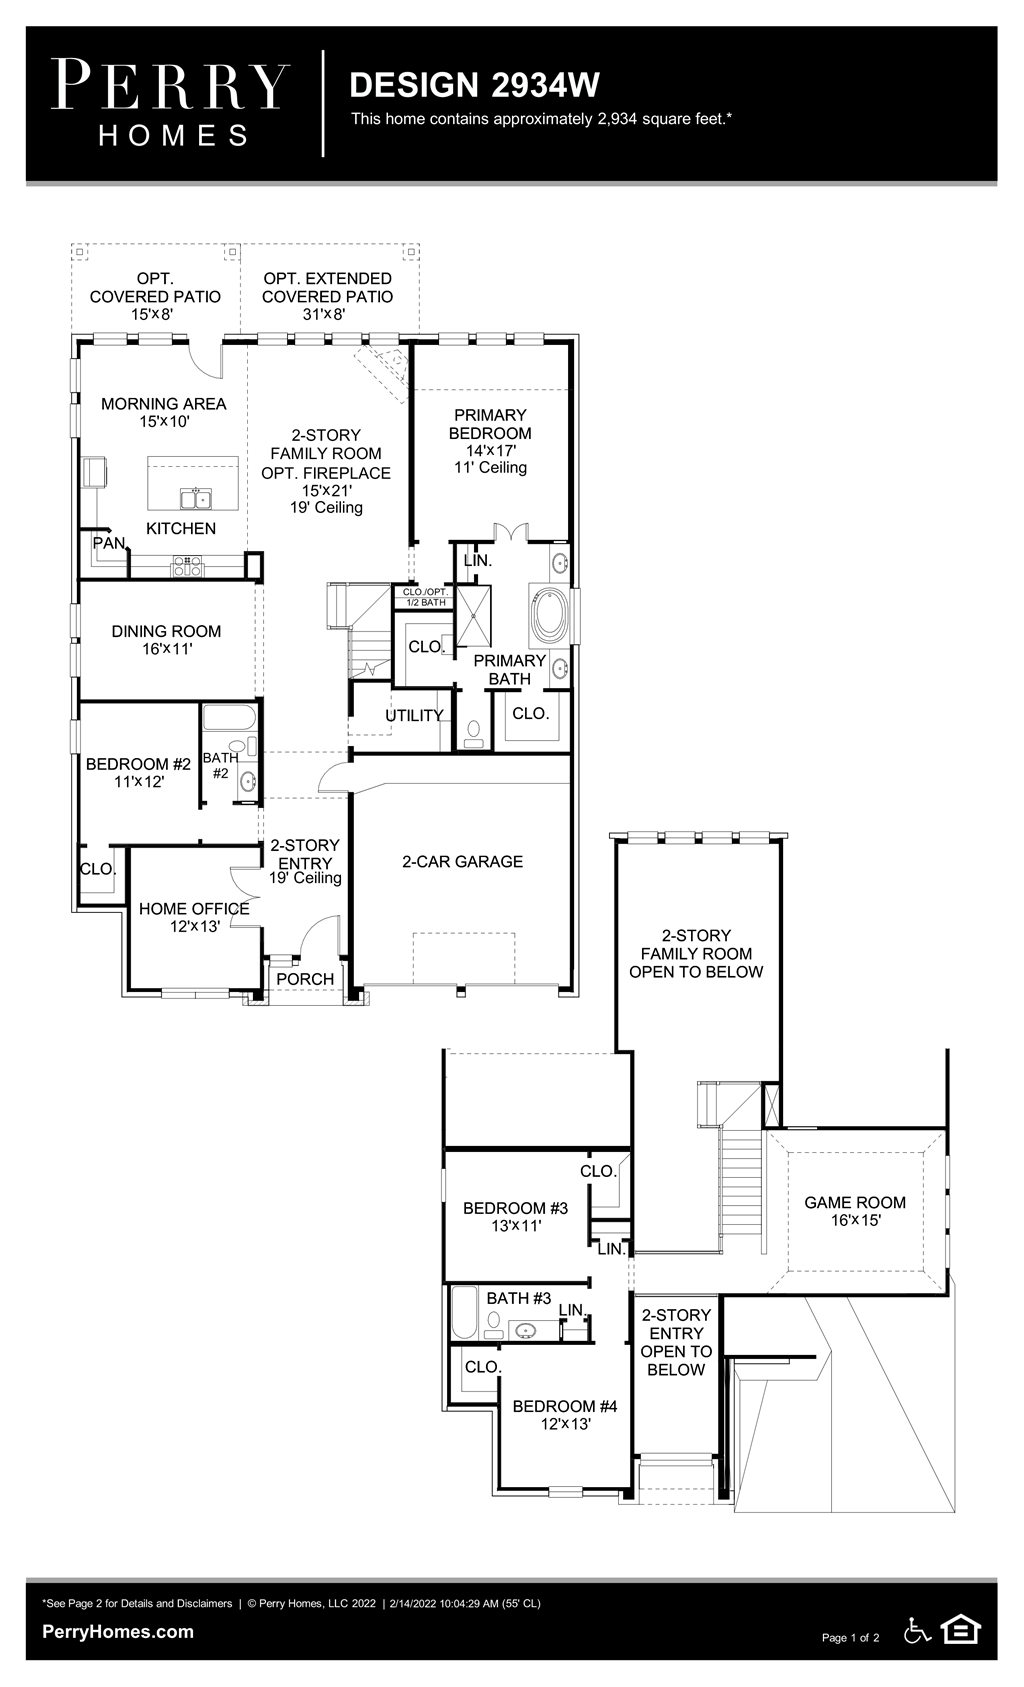 Floor Plan for 2934W